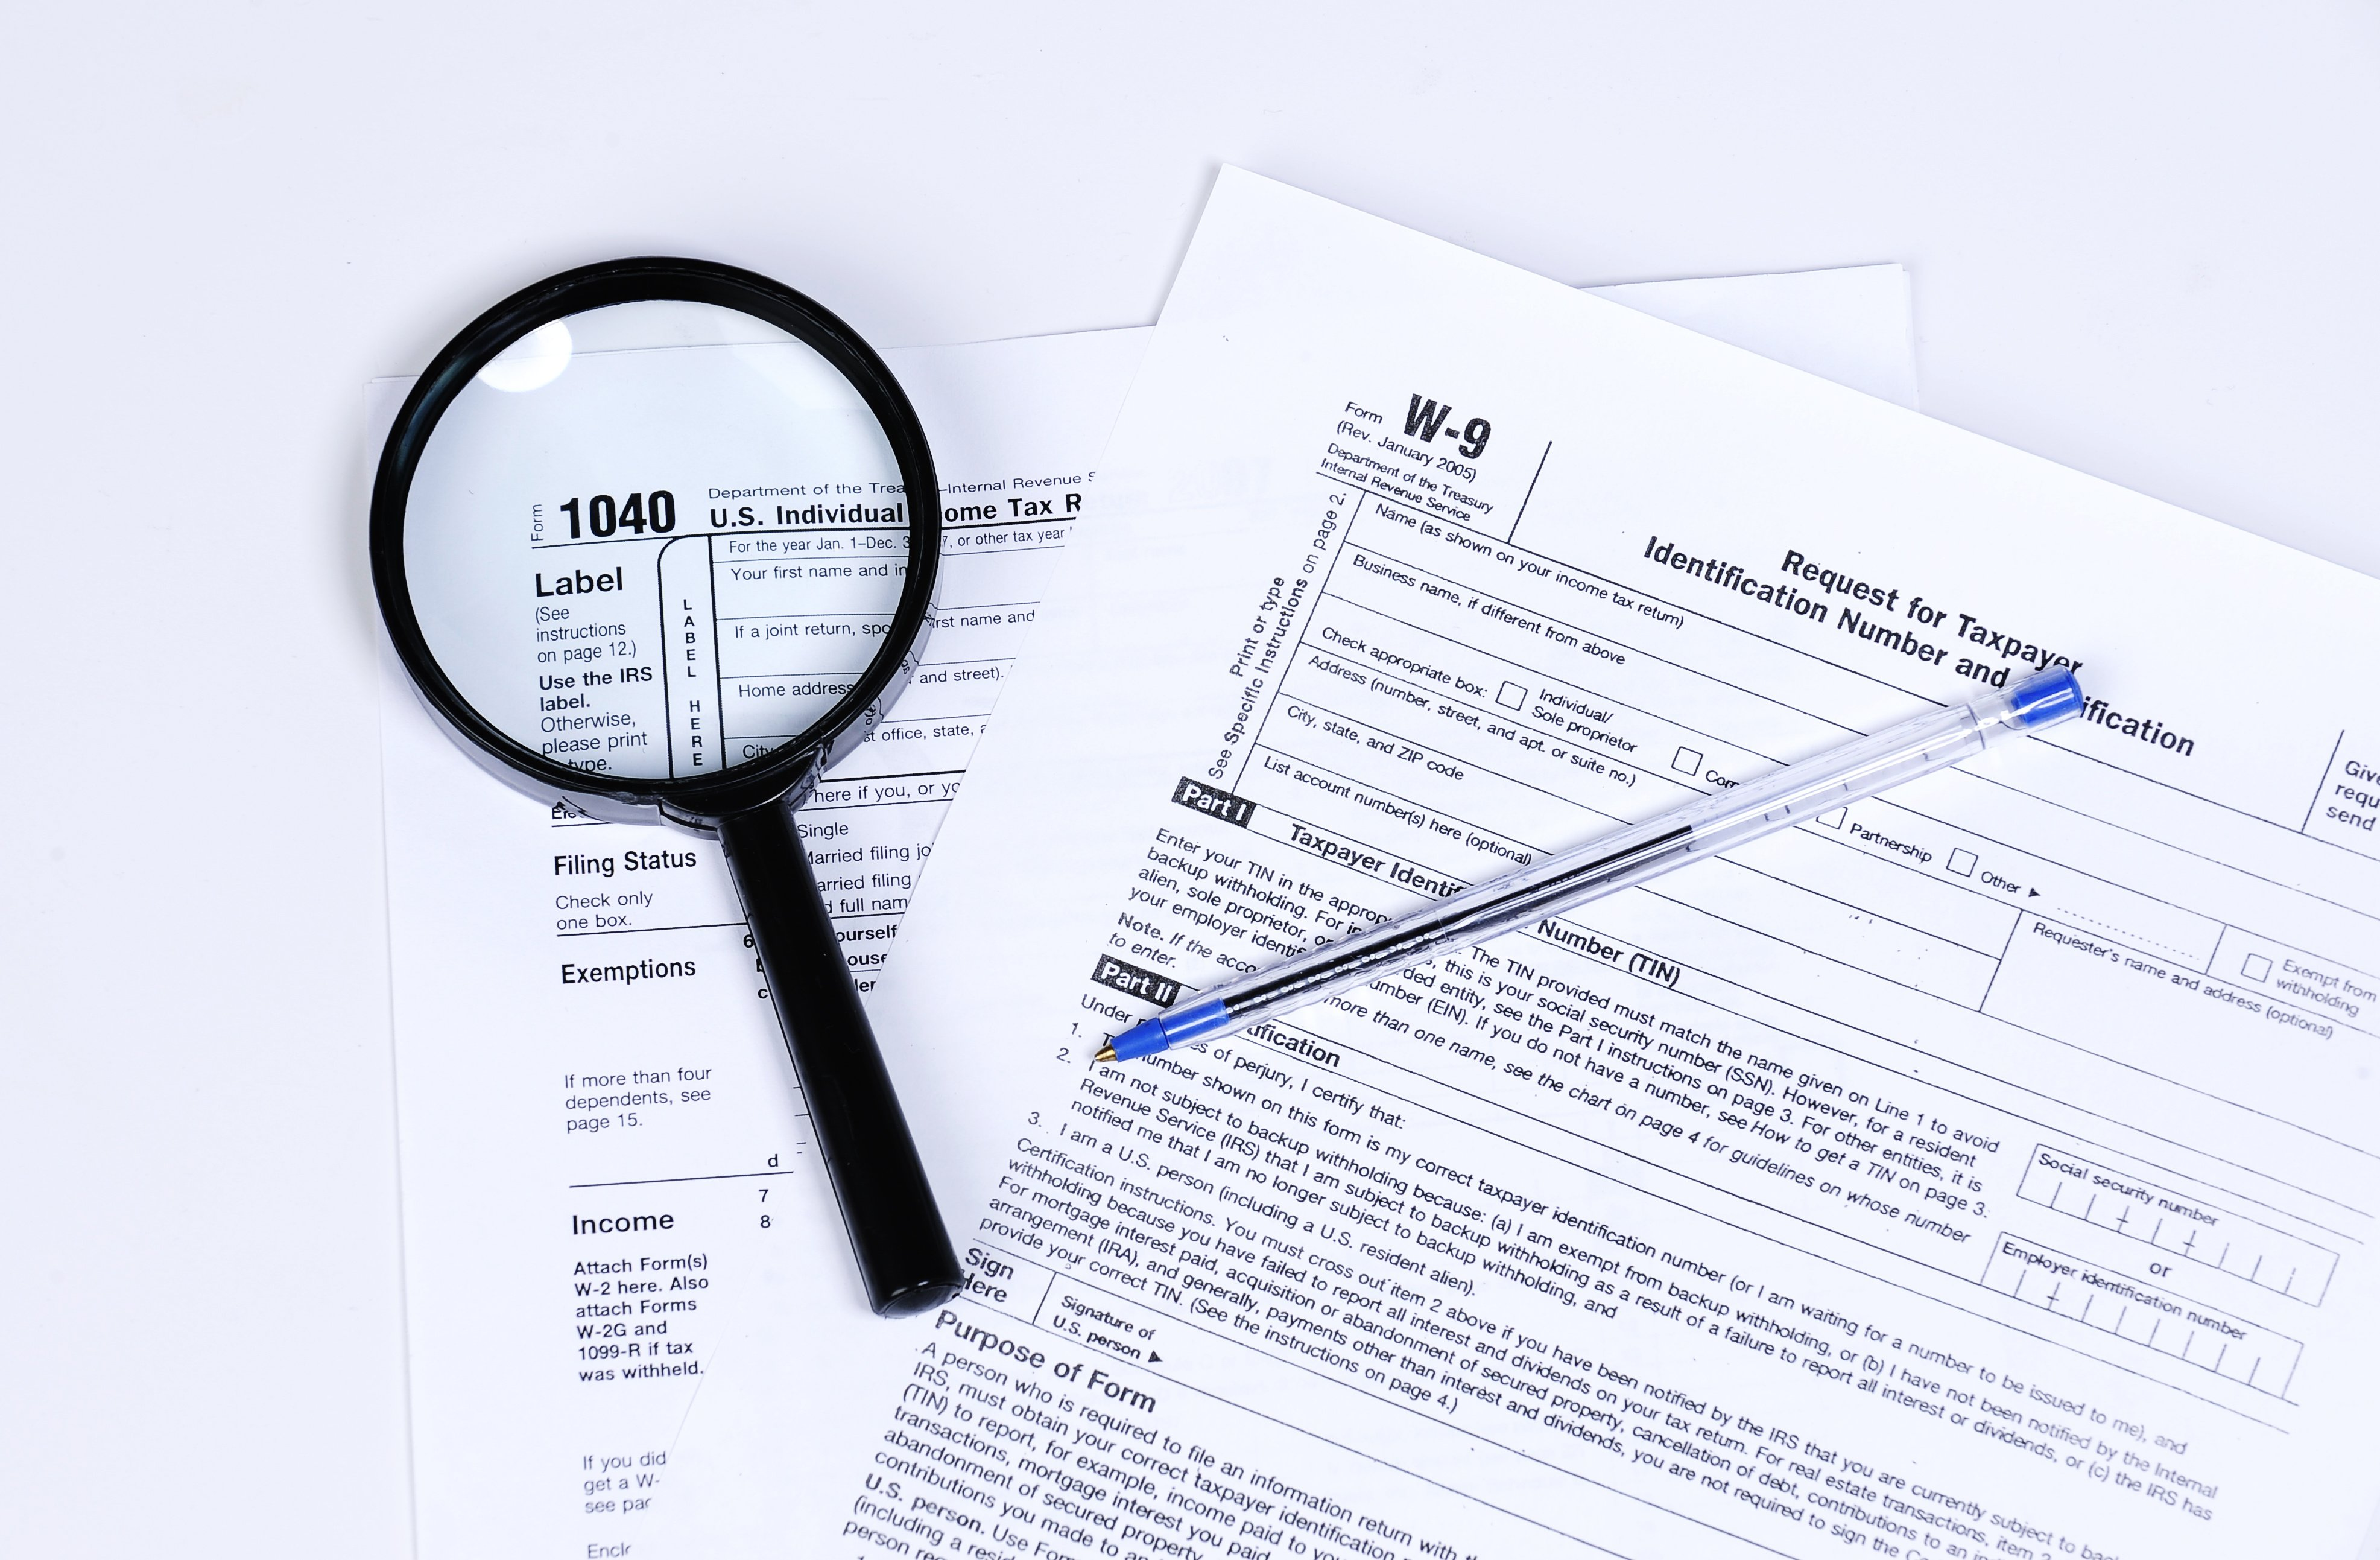 w-9 and 1040 tax form images